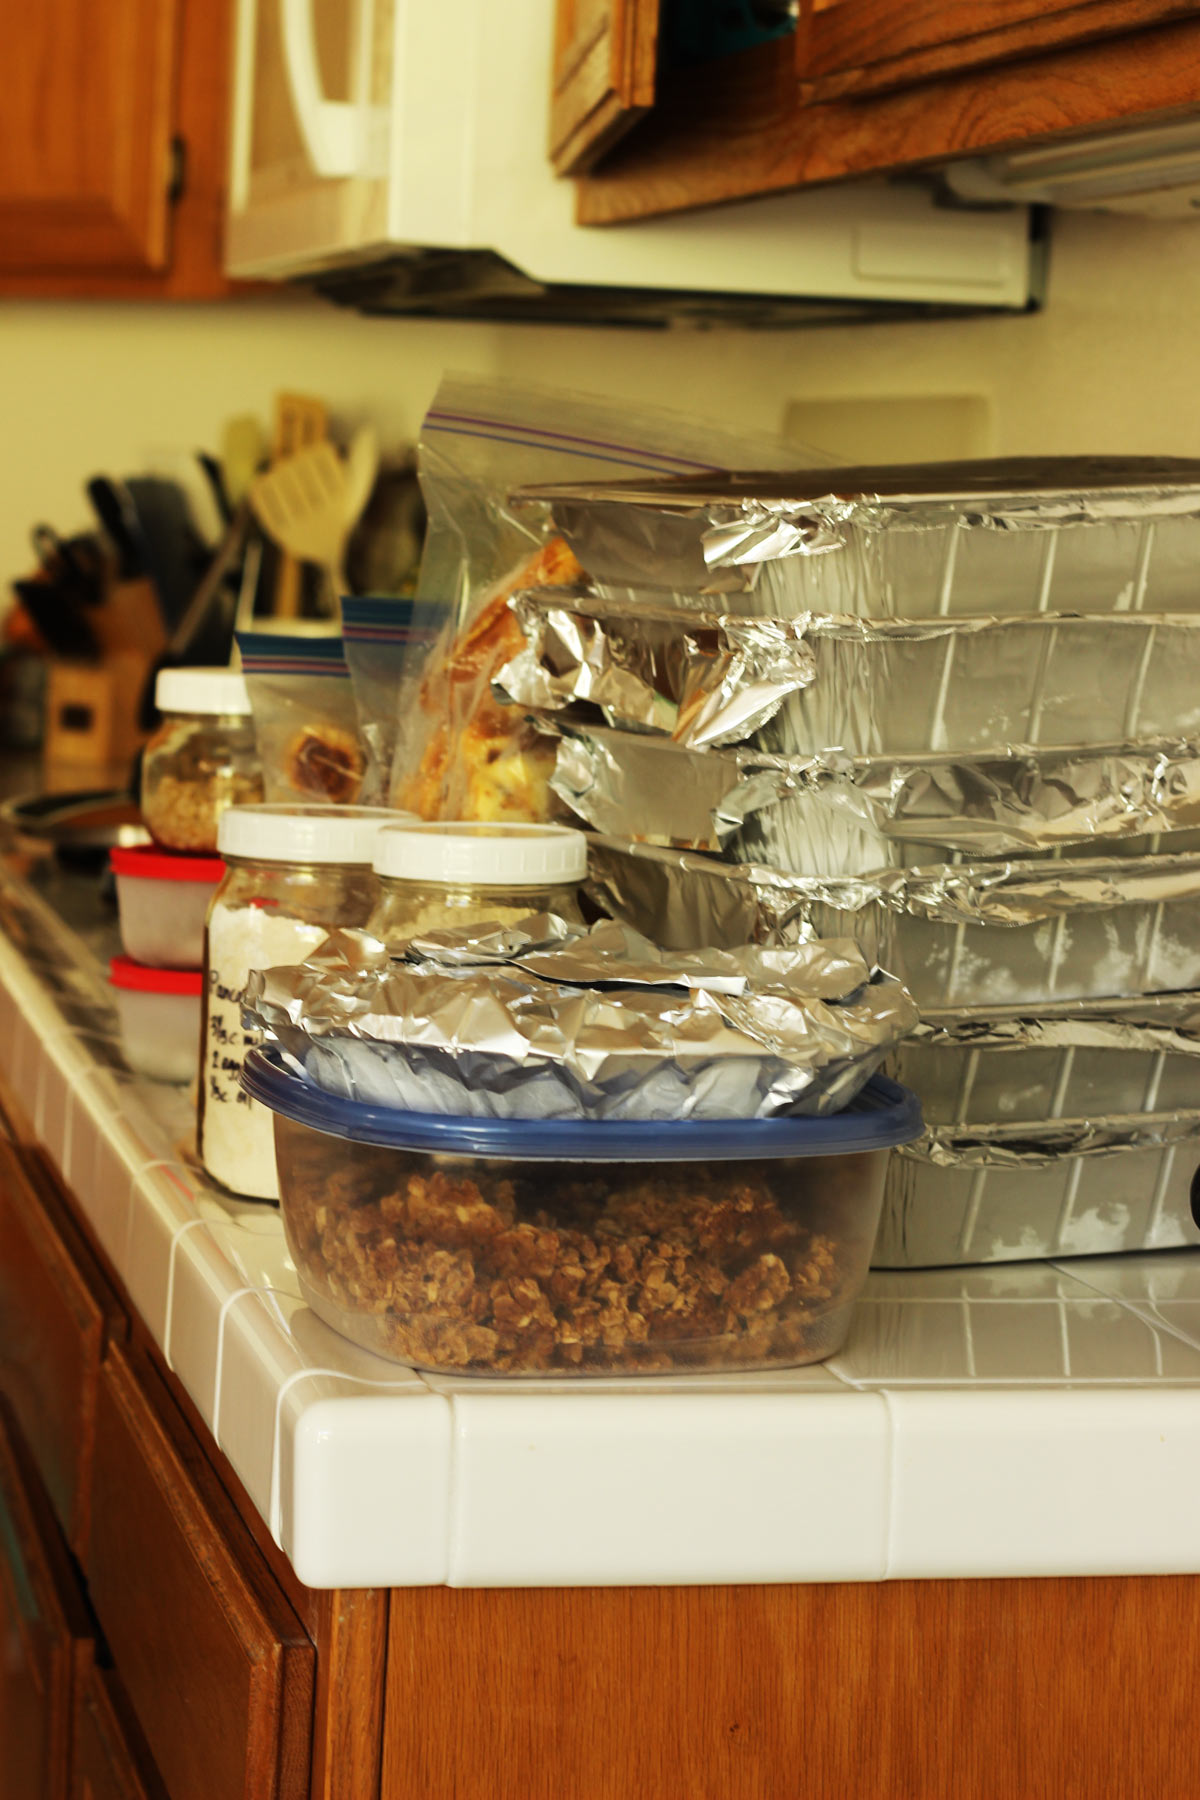 stacks of freezer meals on kitchen counter ready to be frozen.